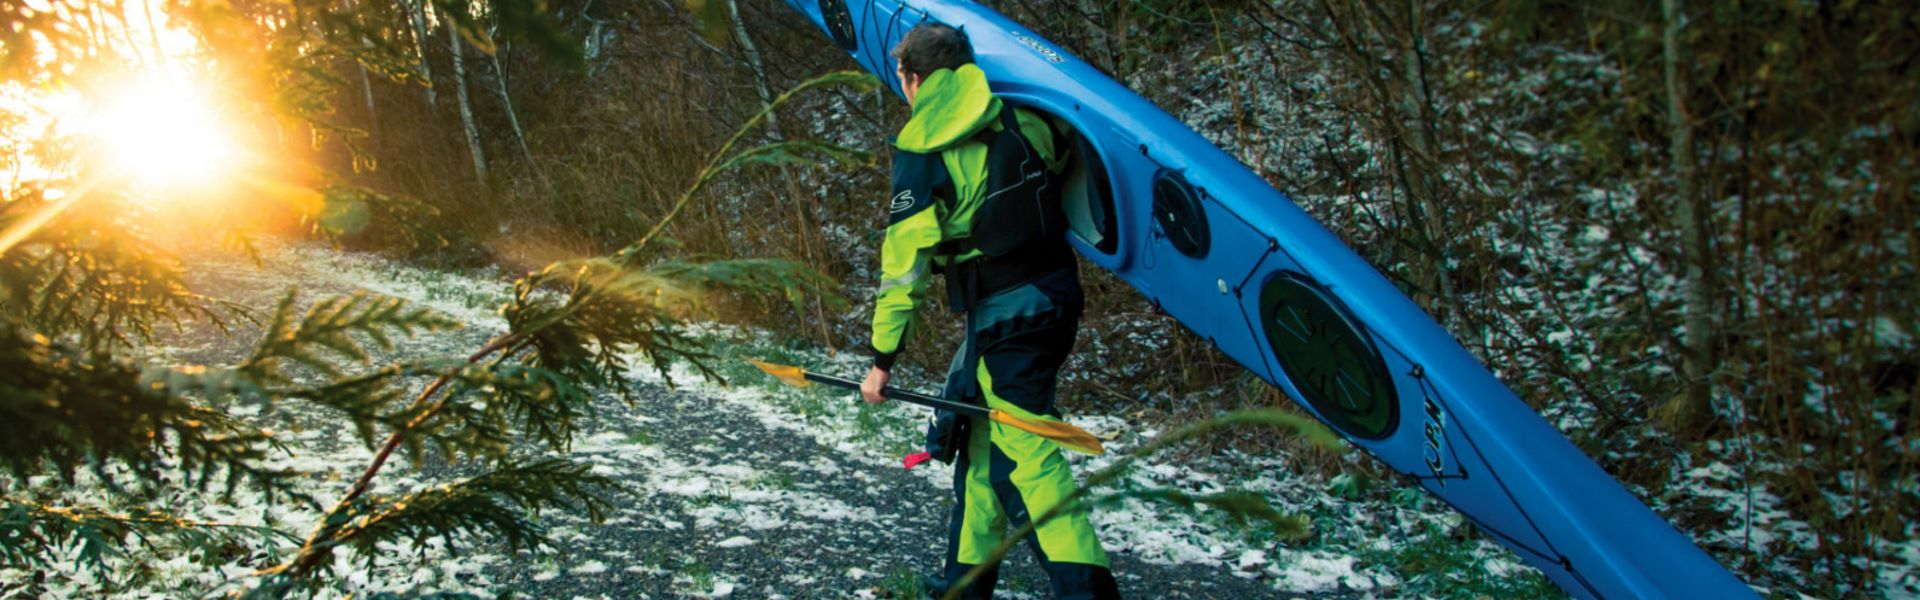 Best Drysuits for Kayaking – Top Rated and Reviewed